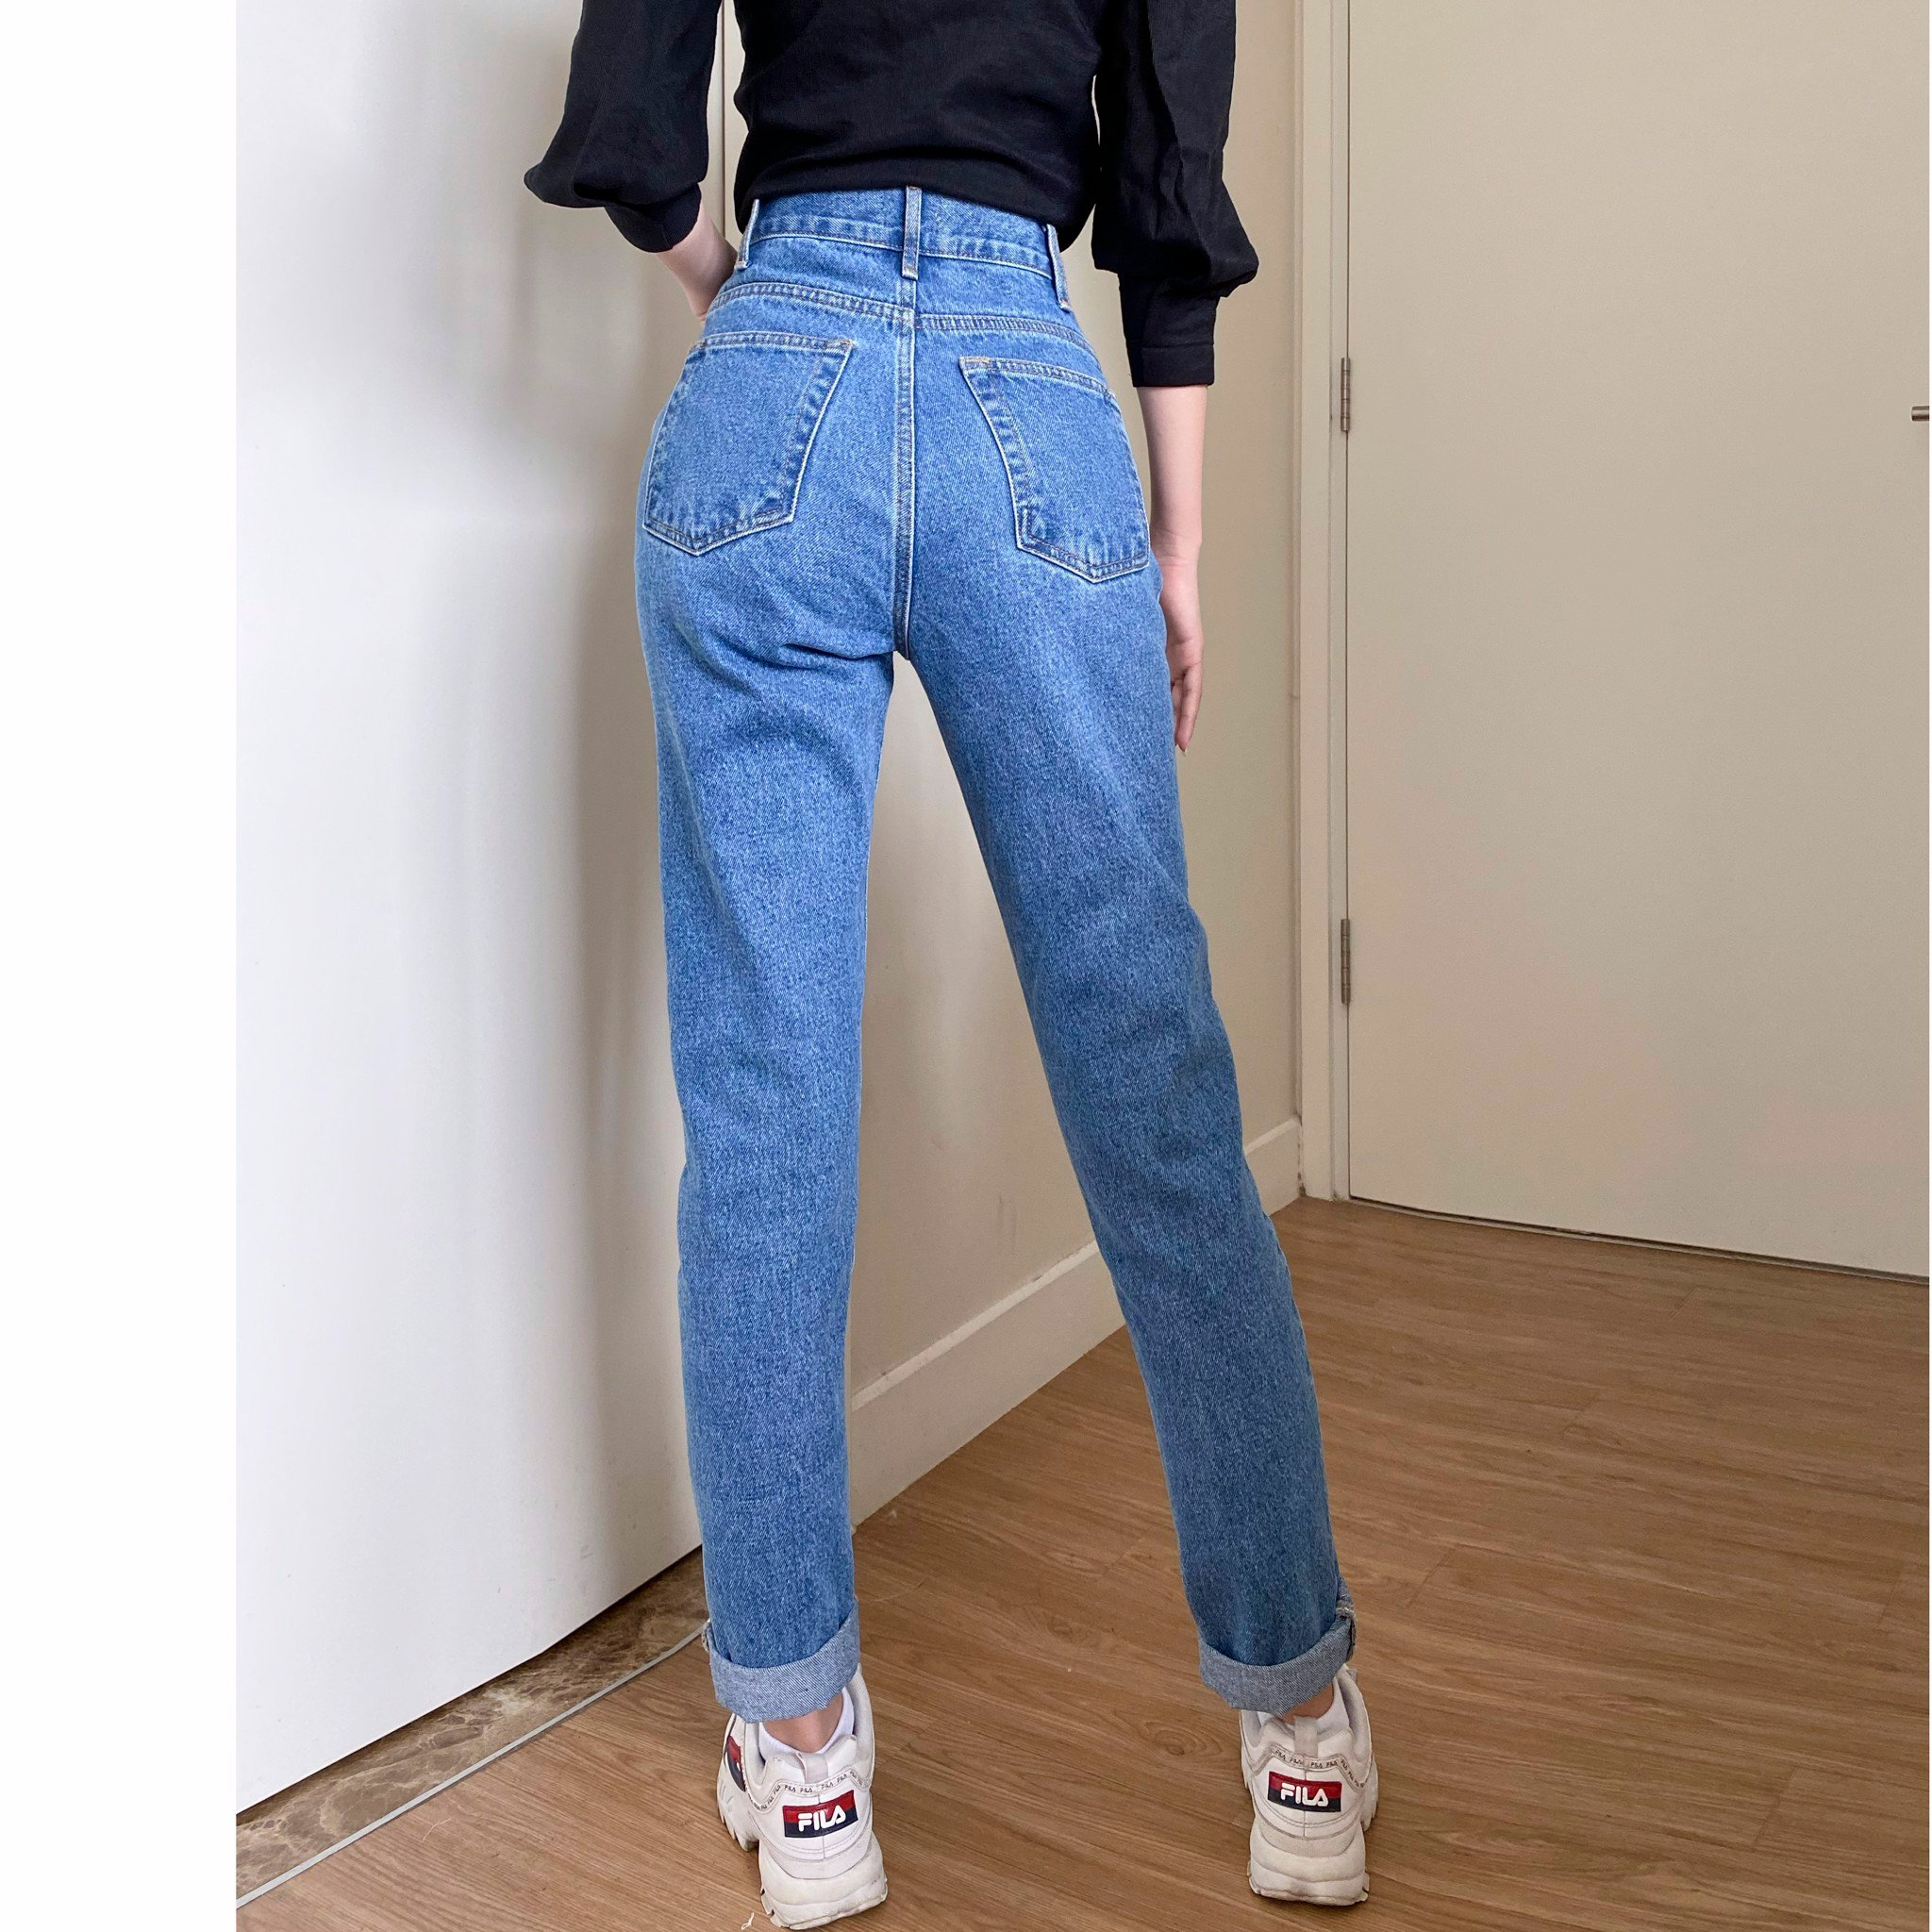 Cut-Out Jeans